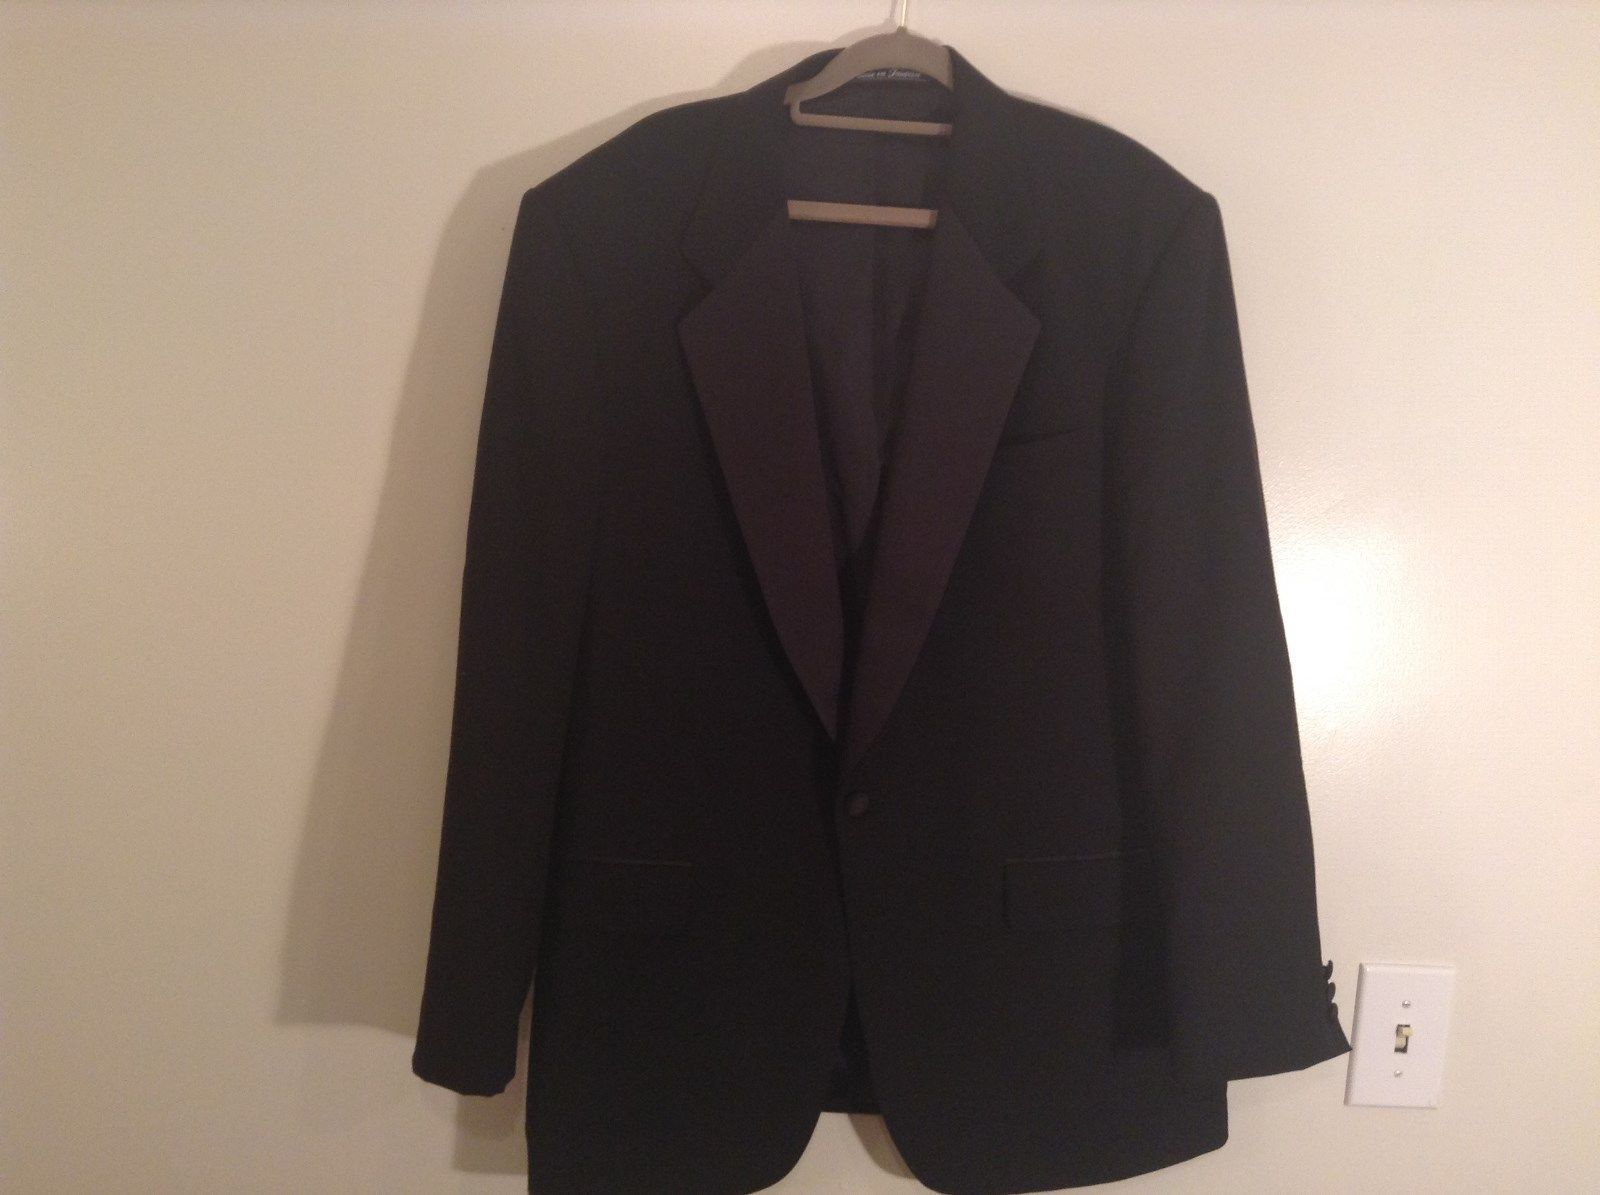 100 Percent Pure New Wool Cricketeer Black Jacket 3 Front Pockets Size 43 Long